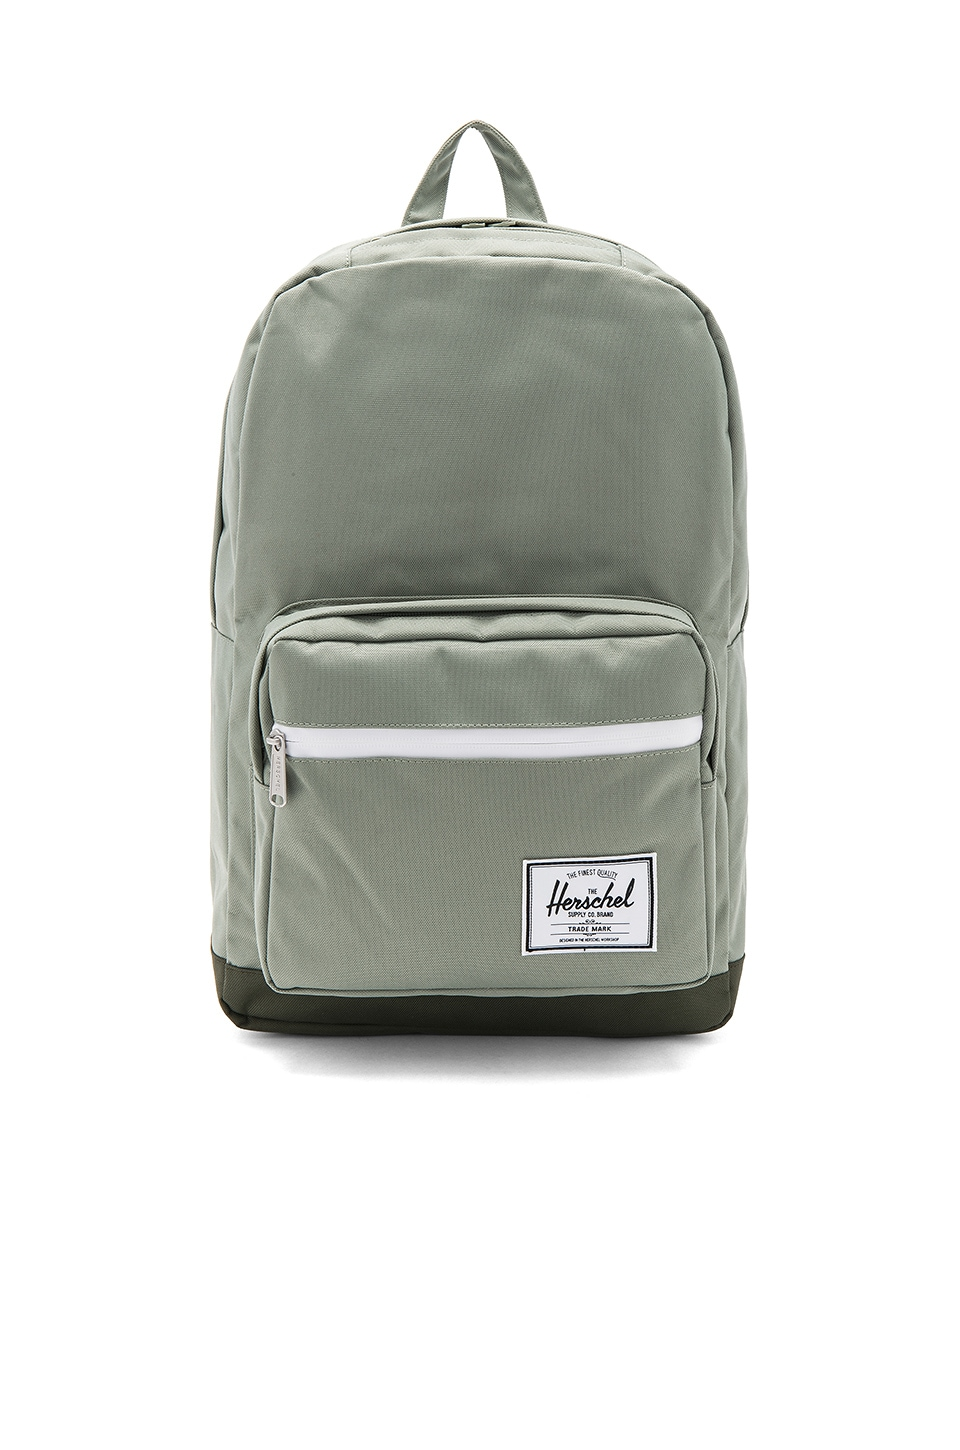 Herschel Supply Co. Pop Quiz Backpack in Shadow and Beetle